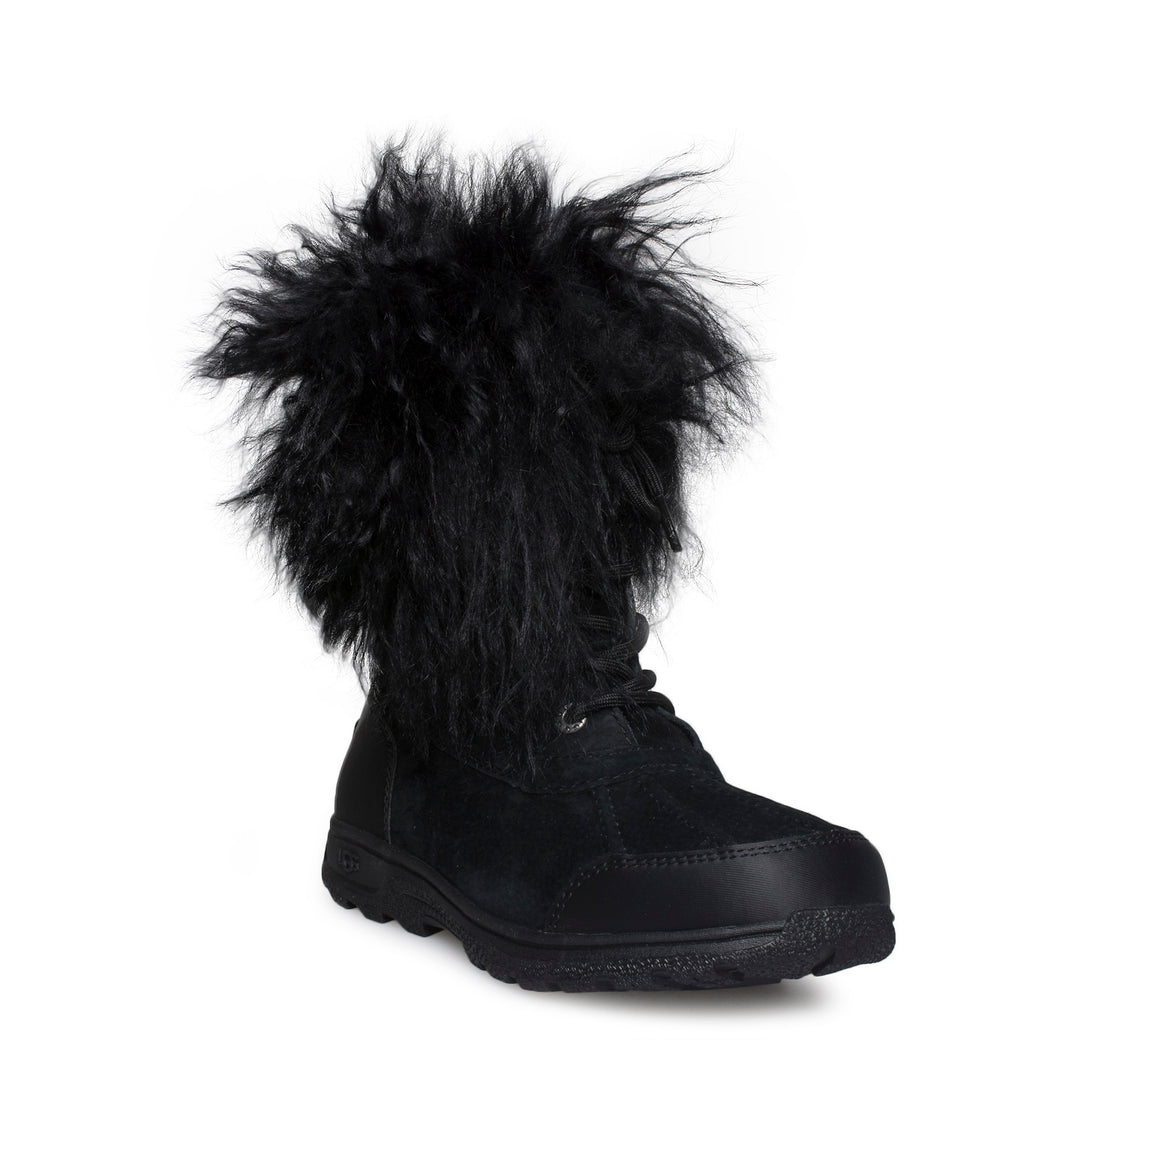 UGG Butte II Fluff Black Boots - Youth